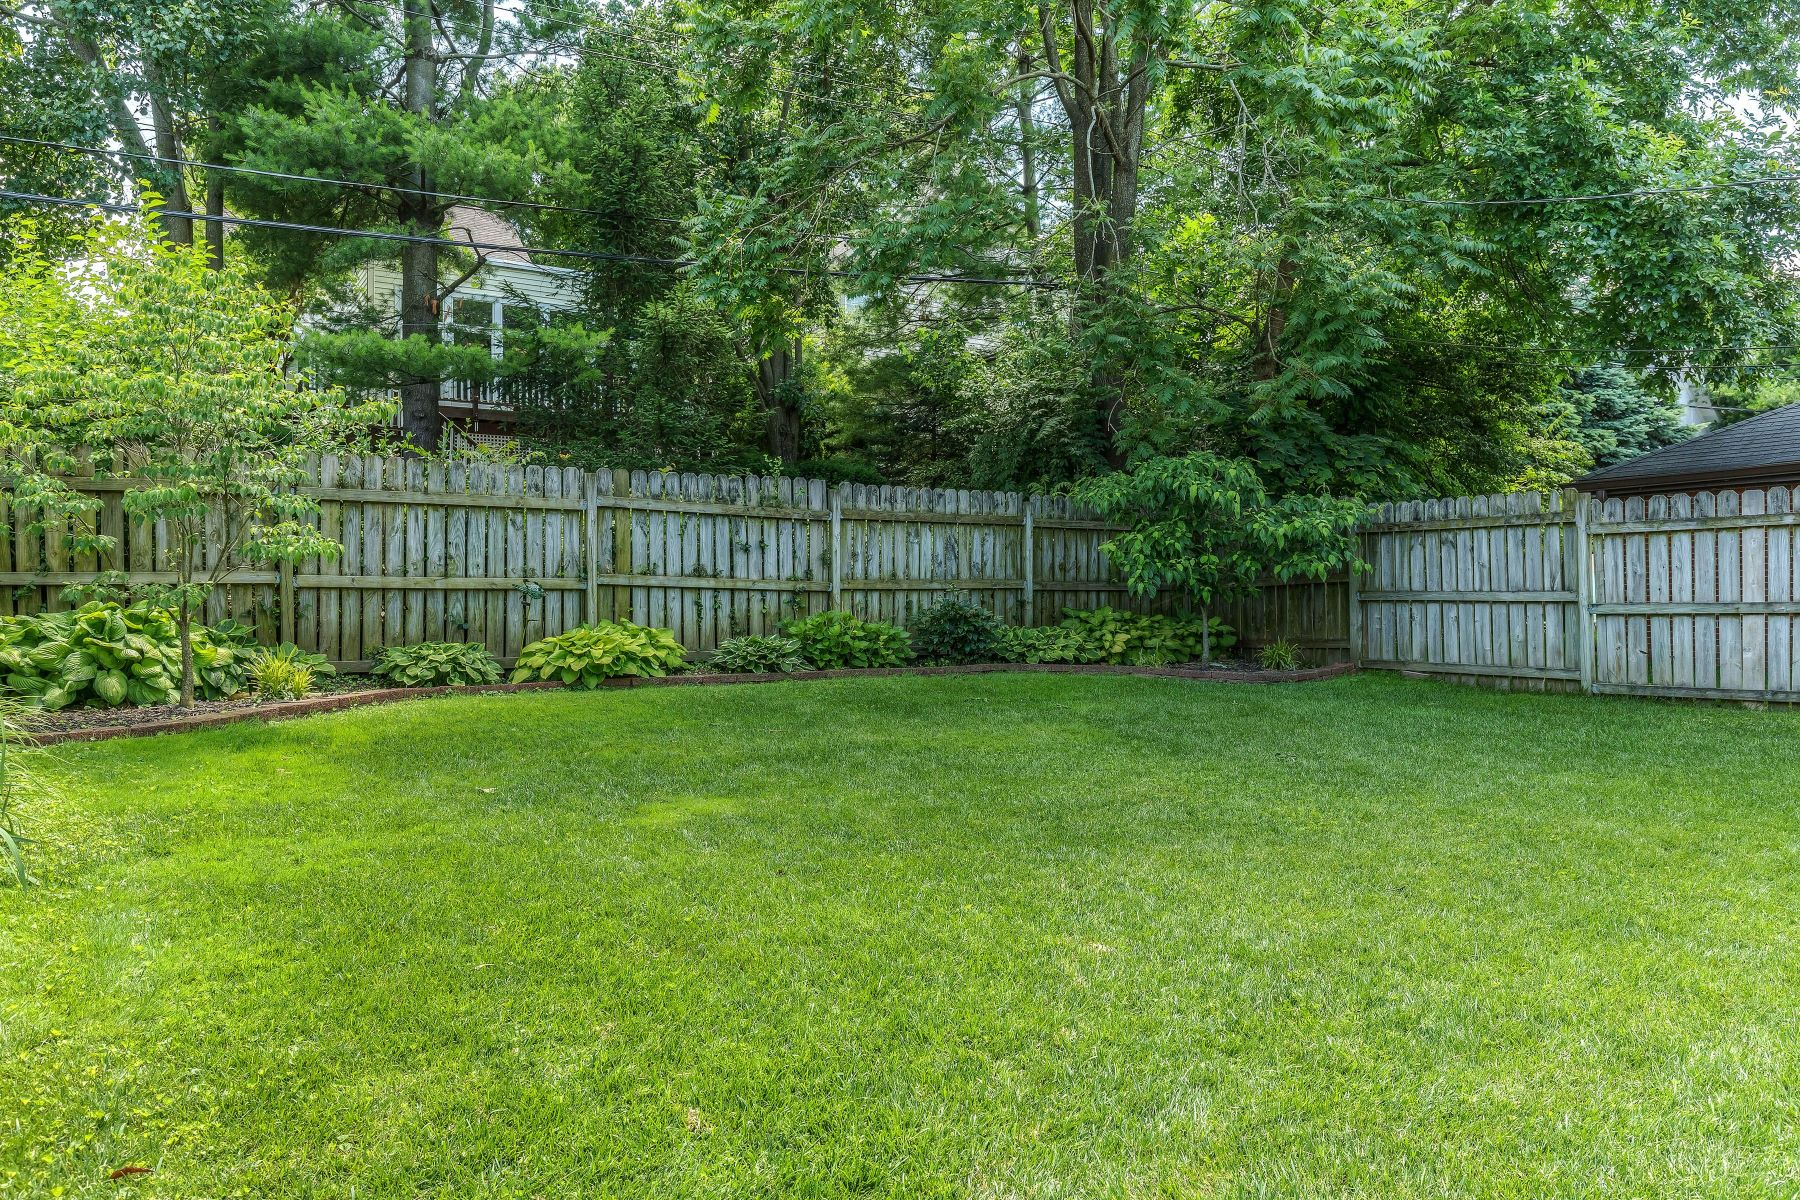 Additional photo for property listing at Charming Home In Ideal Location 7444 University Drive University City, Missouri 63130 United States